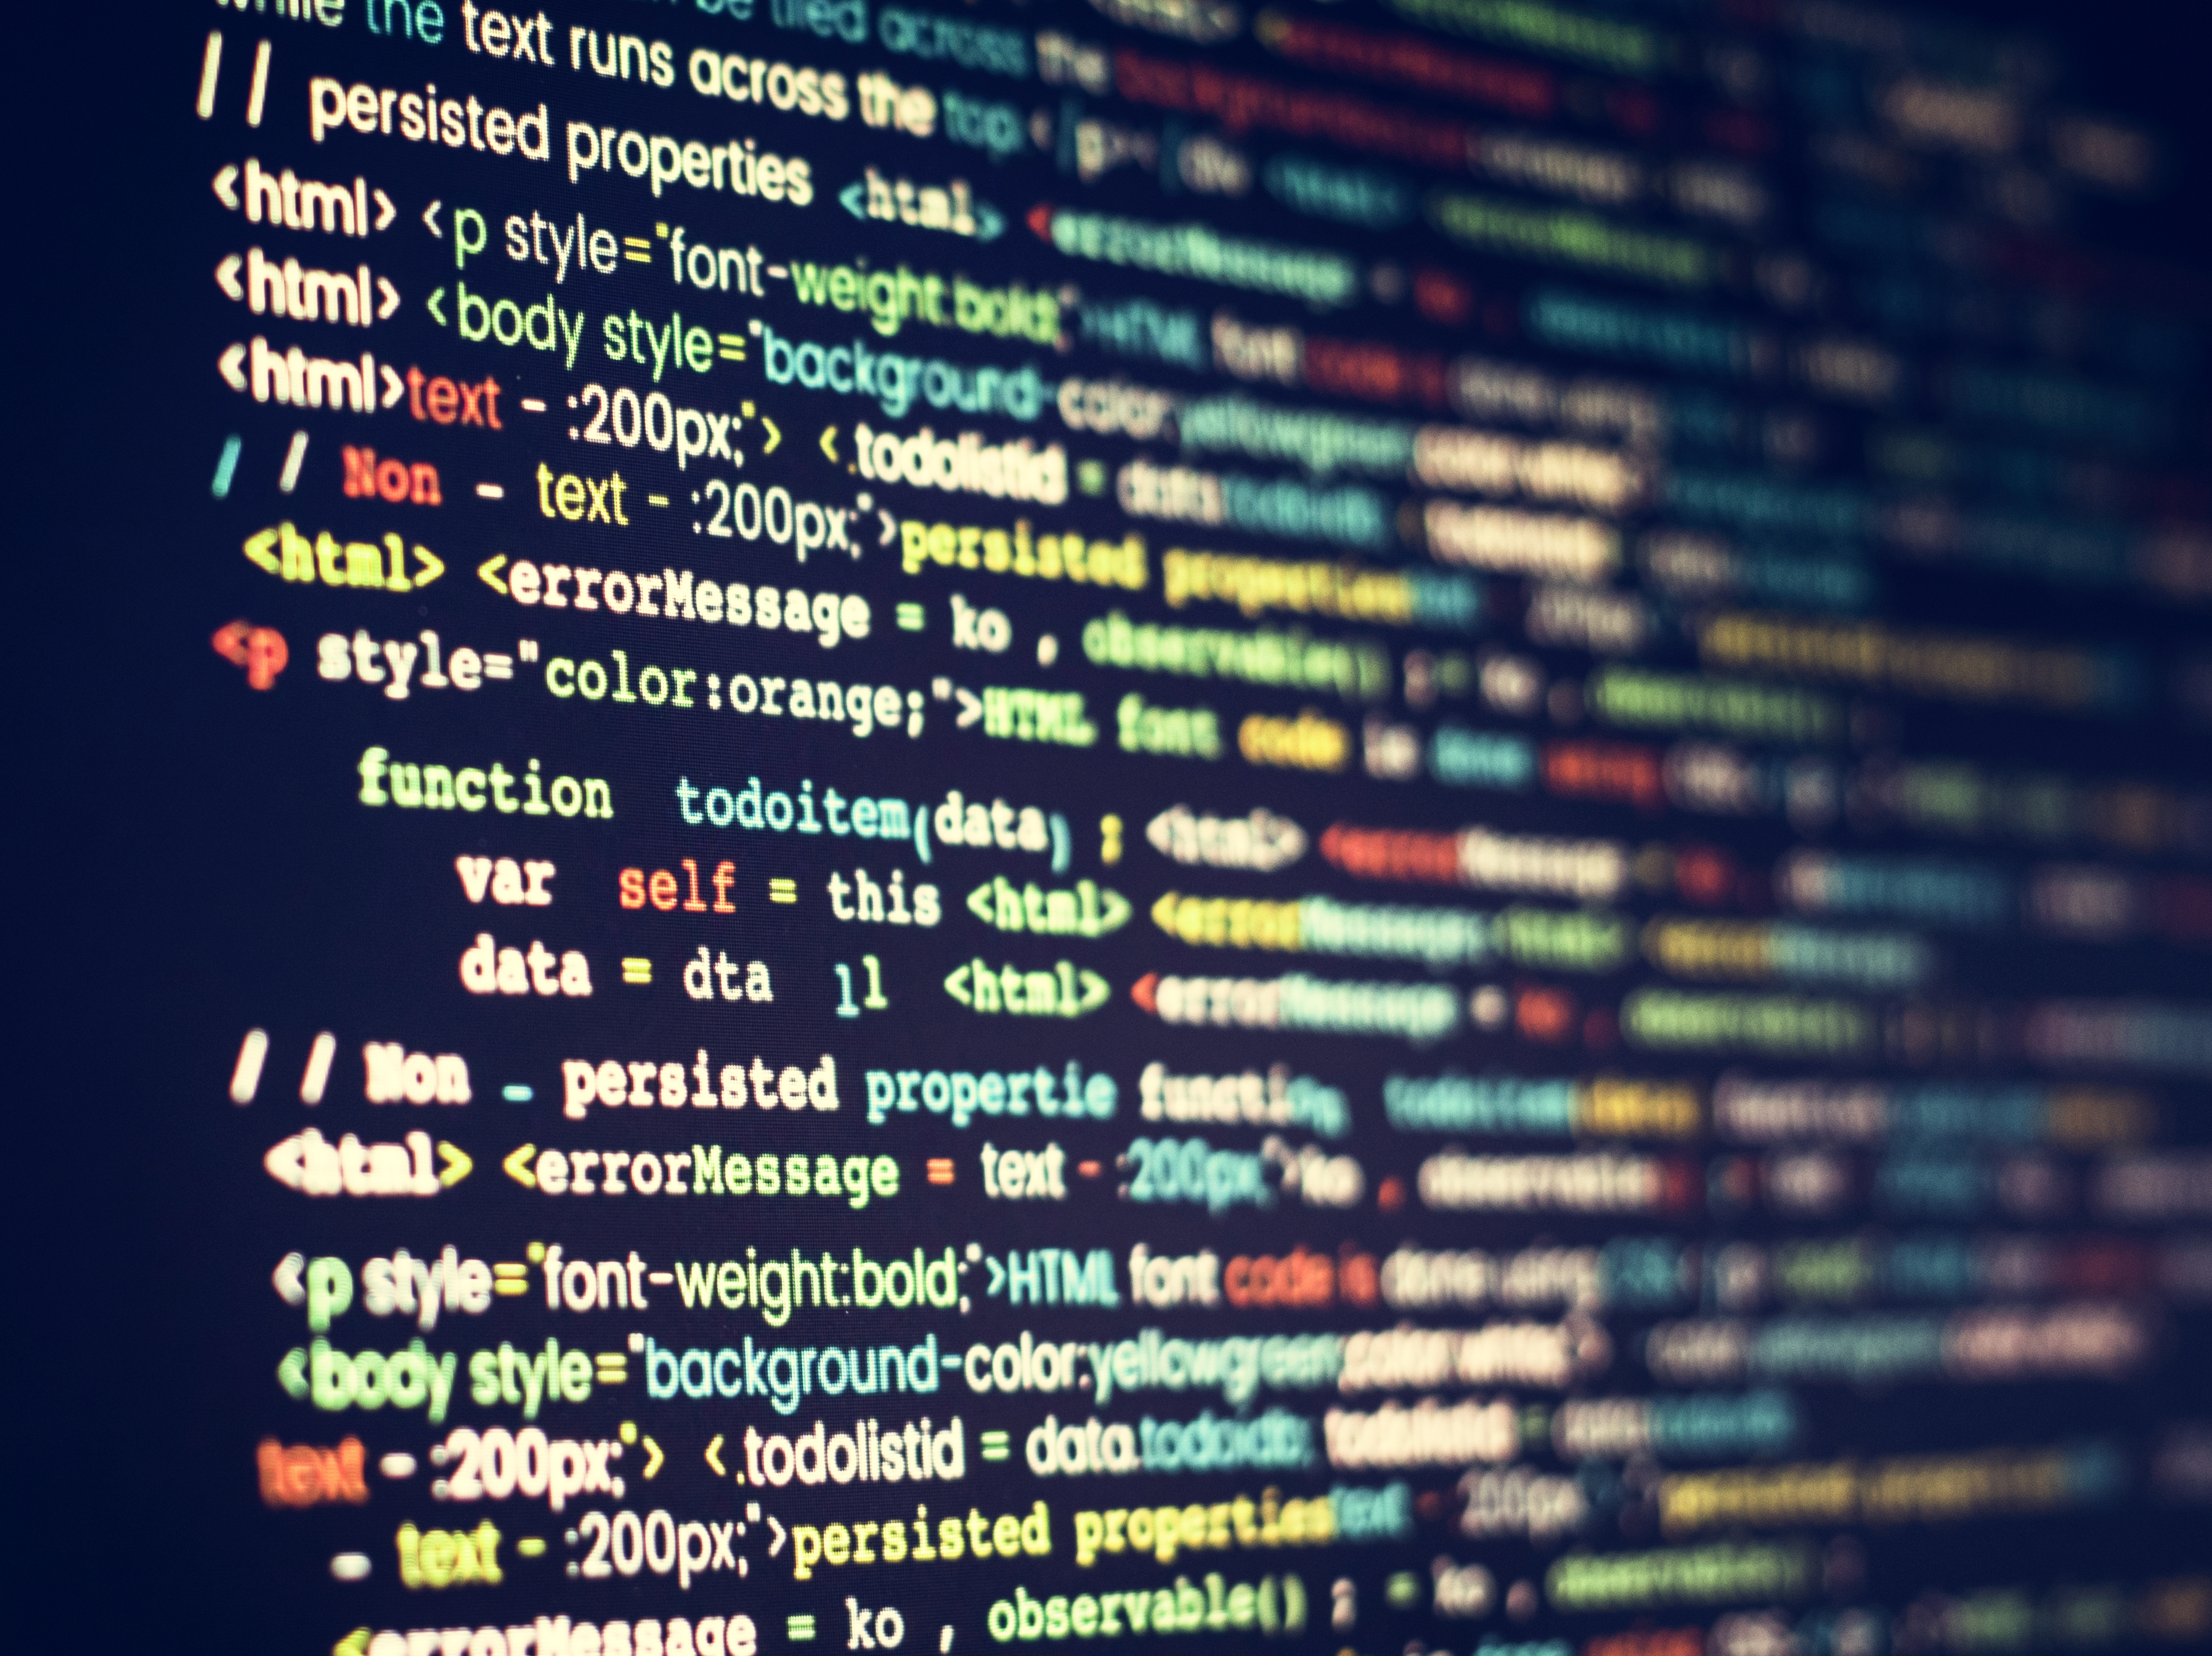 Upgrade Your Web Development Skills With These 10 Essential Tools